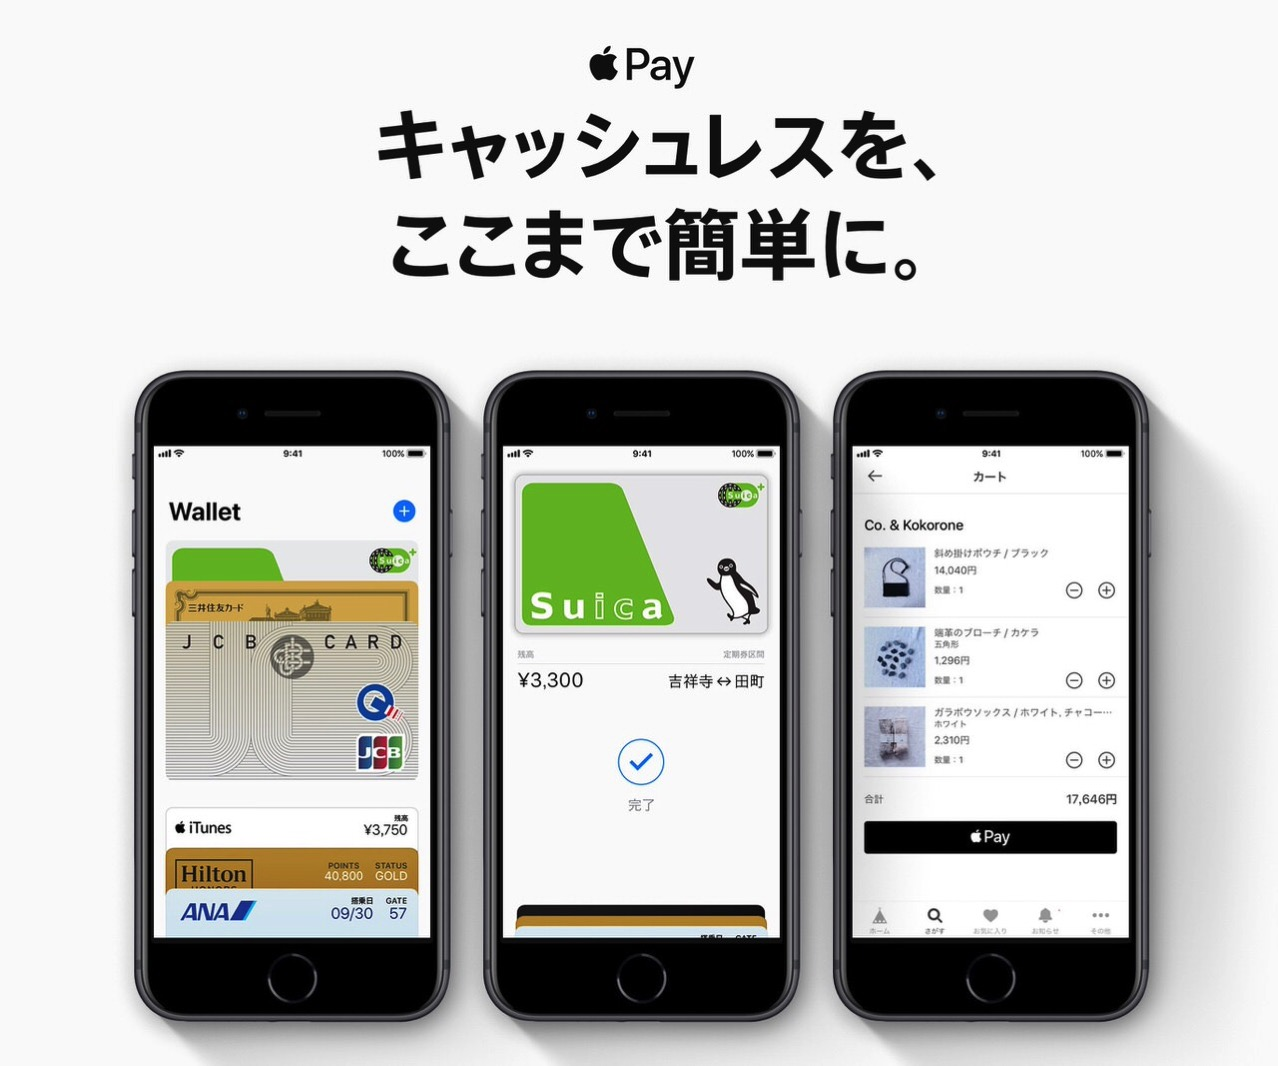 【Apple Pay】JALカード「Visa/Mastercard/TOKYU POINT ClubQ」が対応